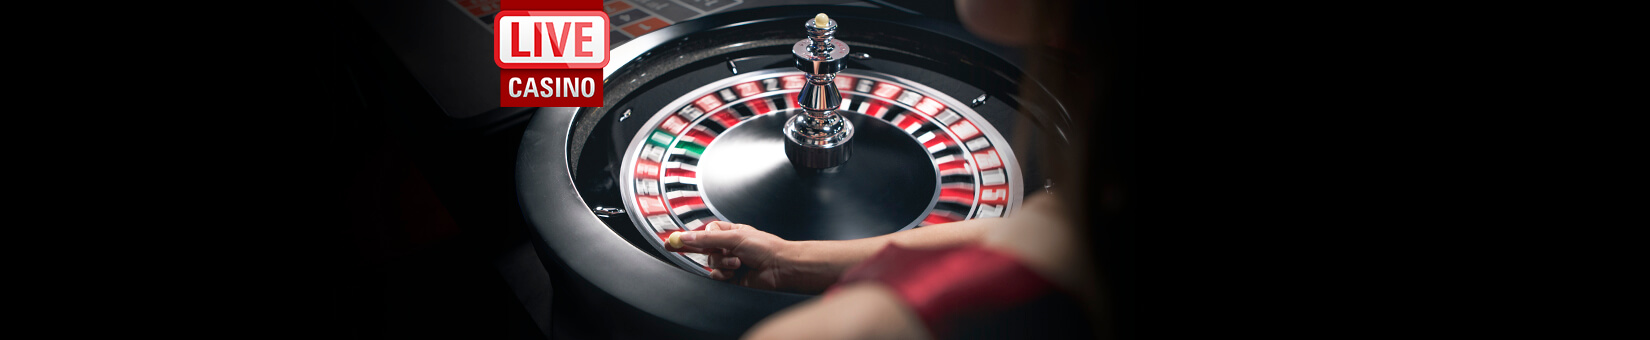 Cassino online free chinese roulette roleta - 276880